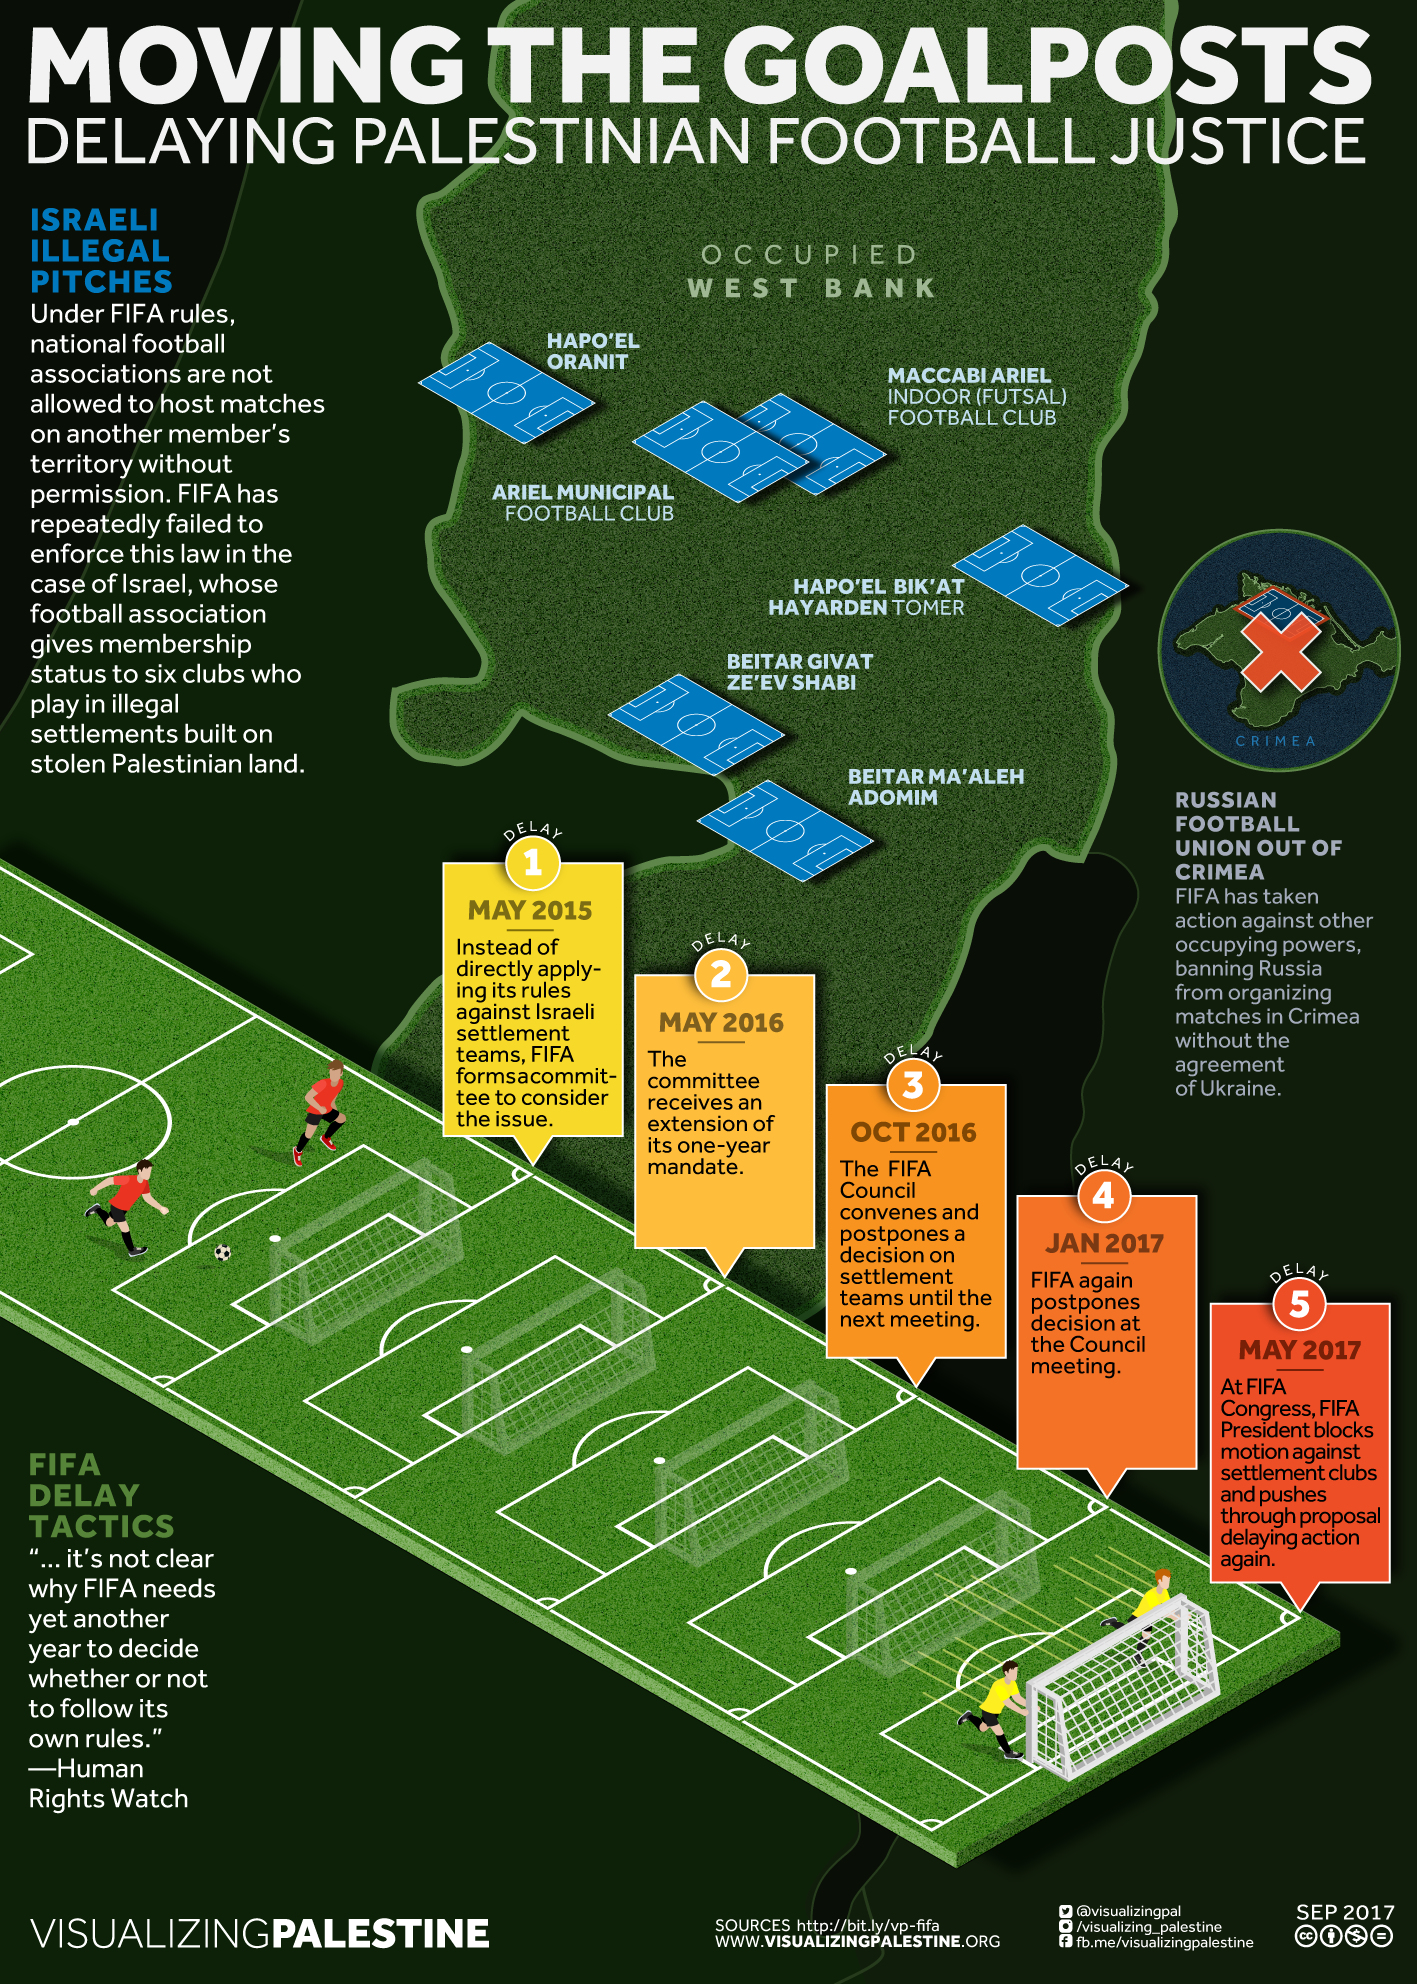 Moving the Goalposts - Visualizing Palestine